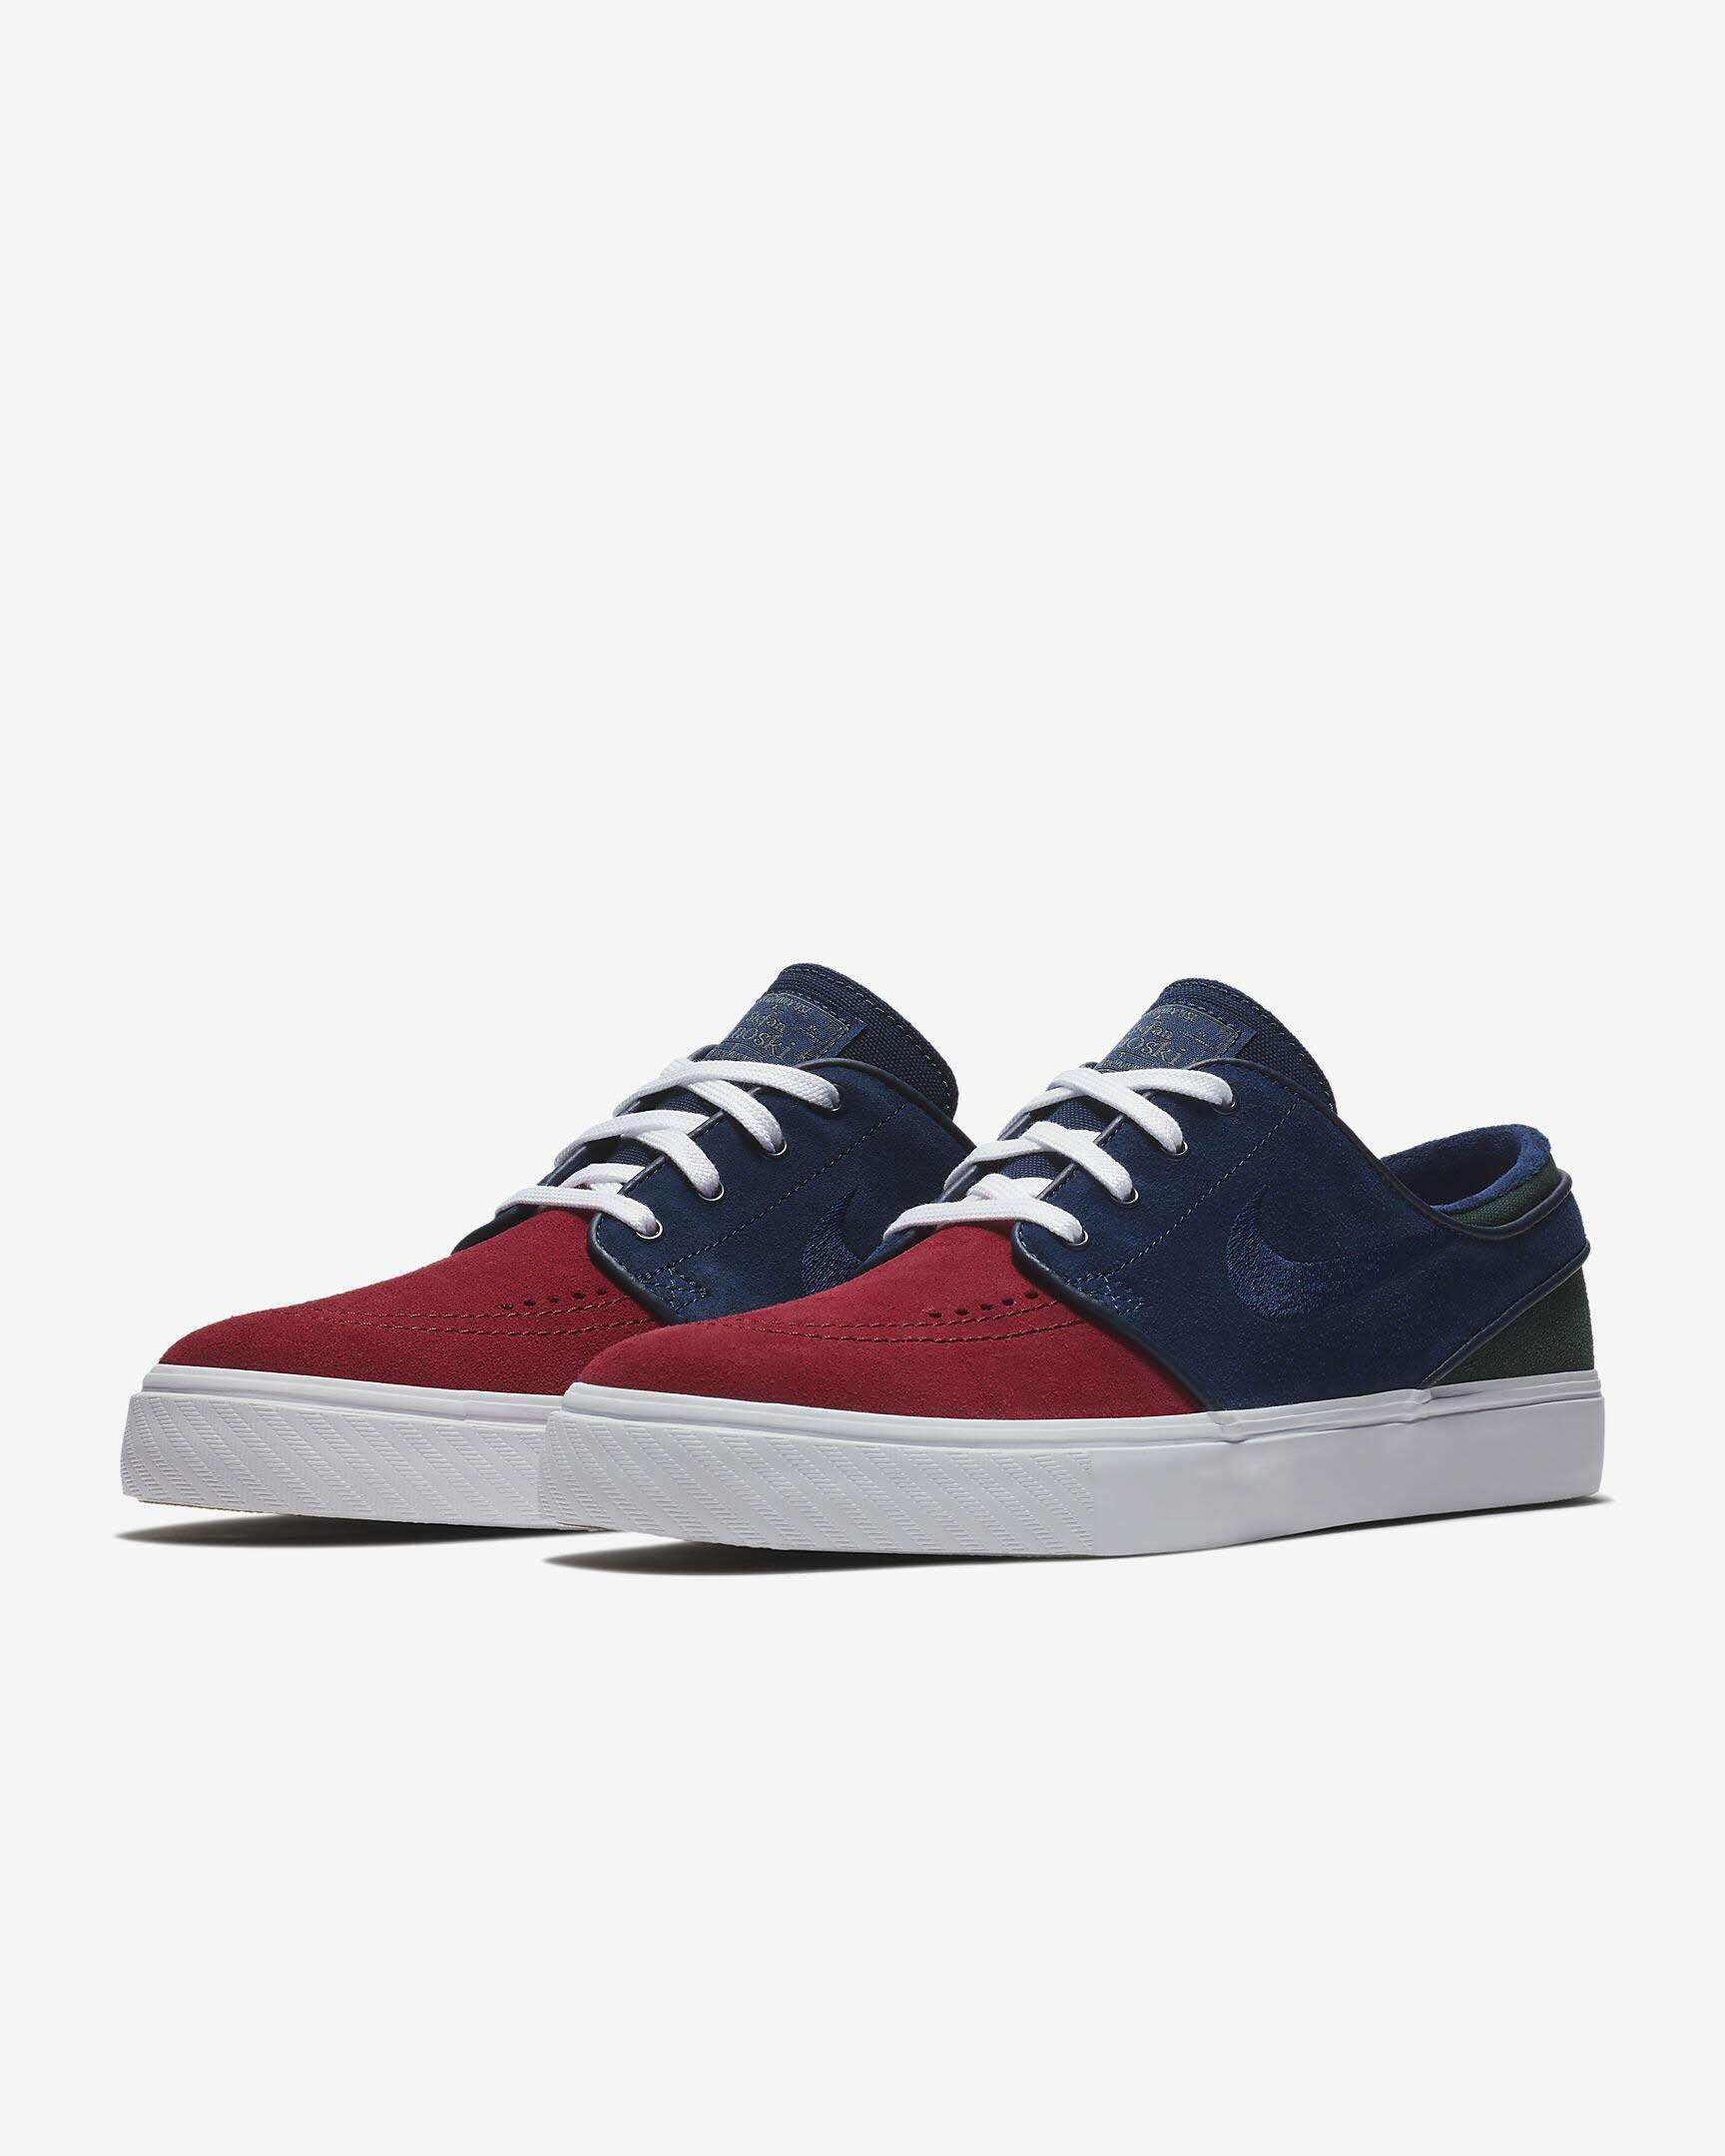 9c974a89ead40 Galleon - Nike Zoom Stefan Janoski Mens Fashion-Sneakers 333824-641 10 - RED  Crush Blue Void-White-Midnight Green